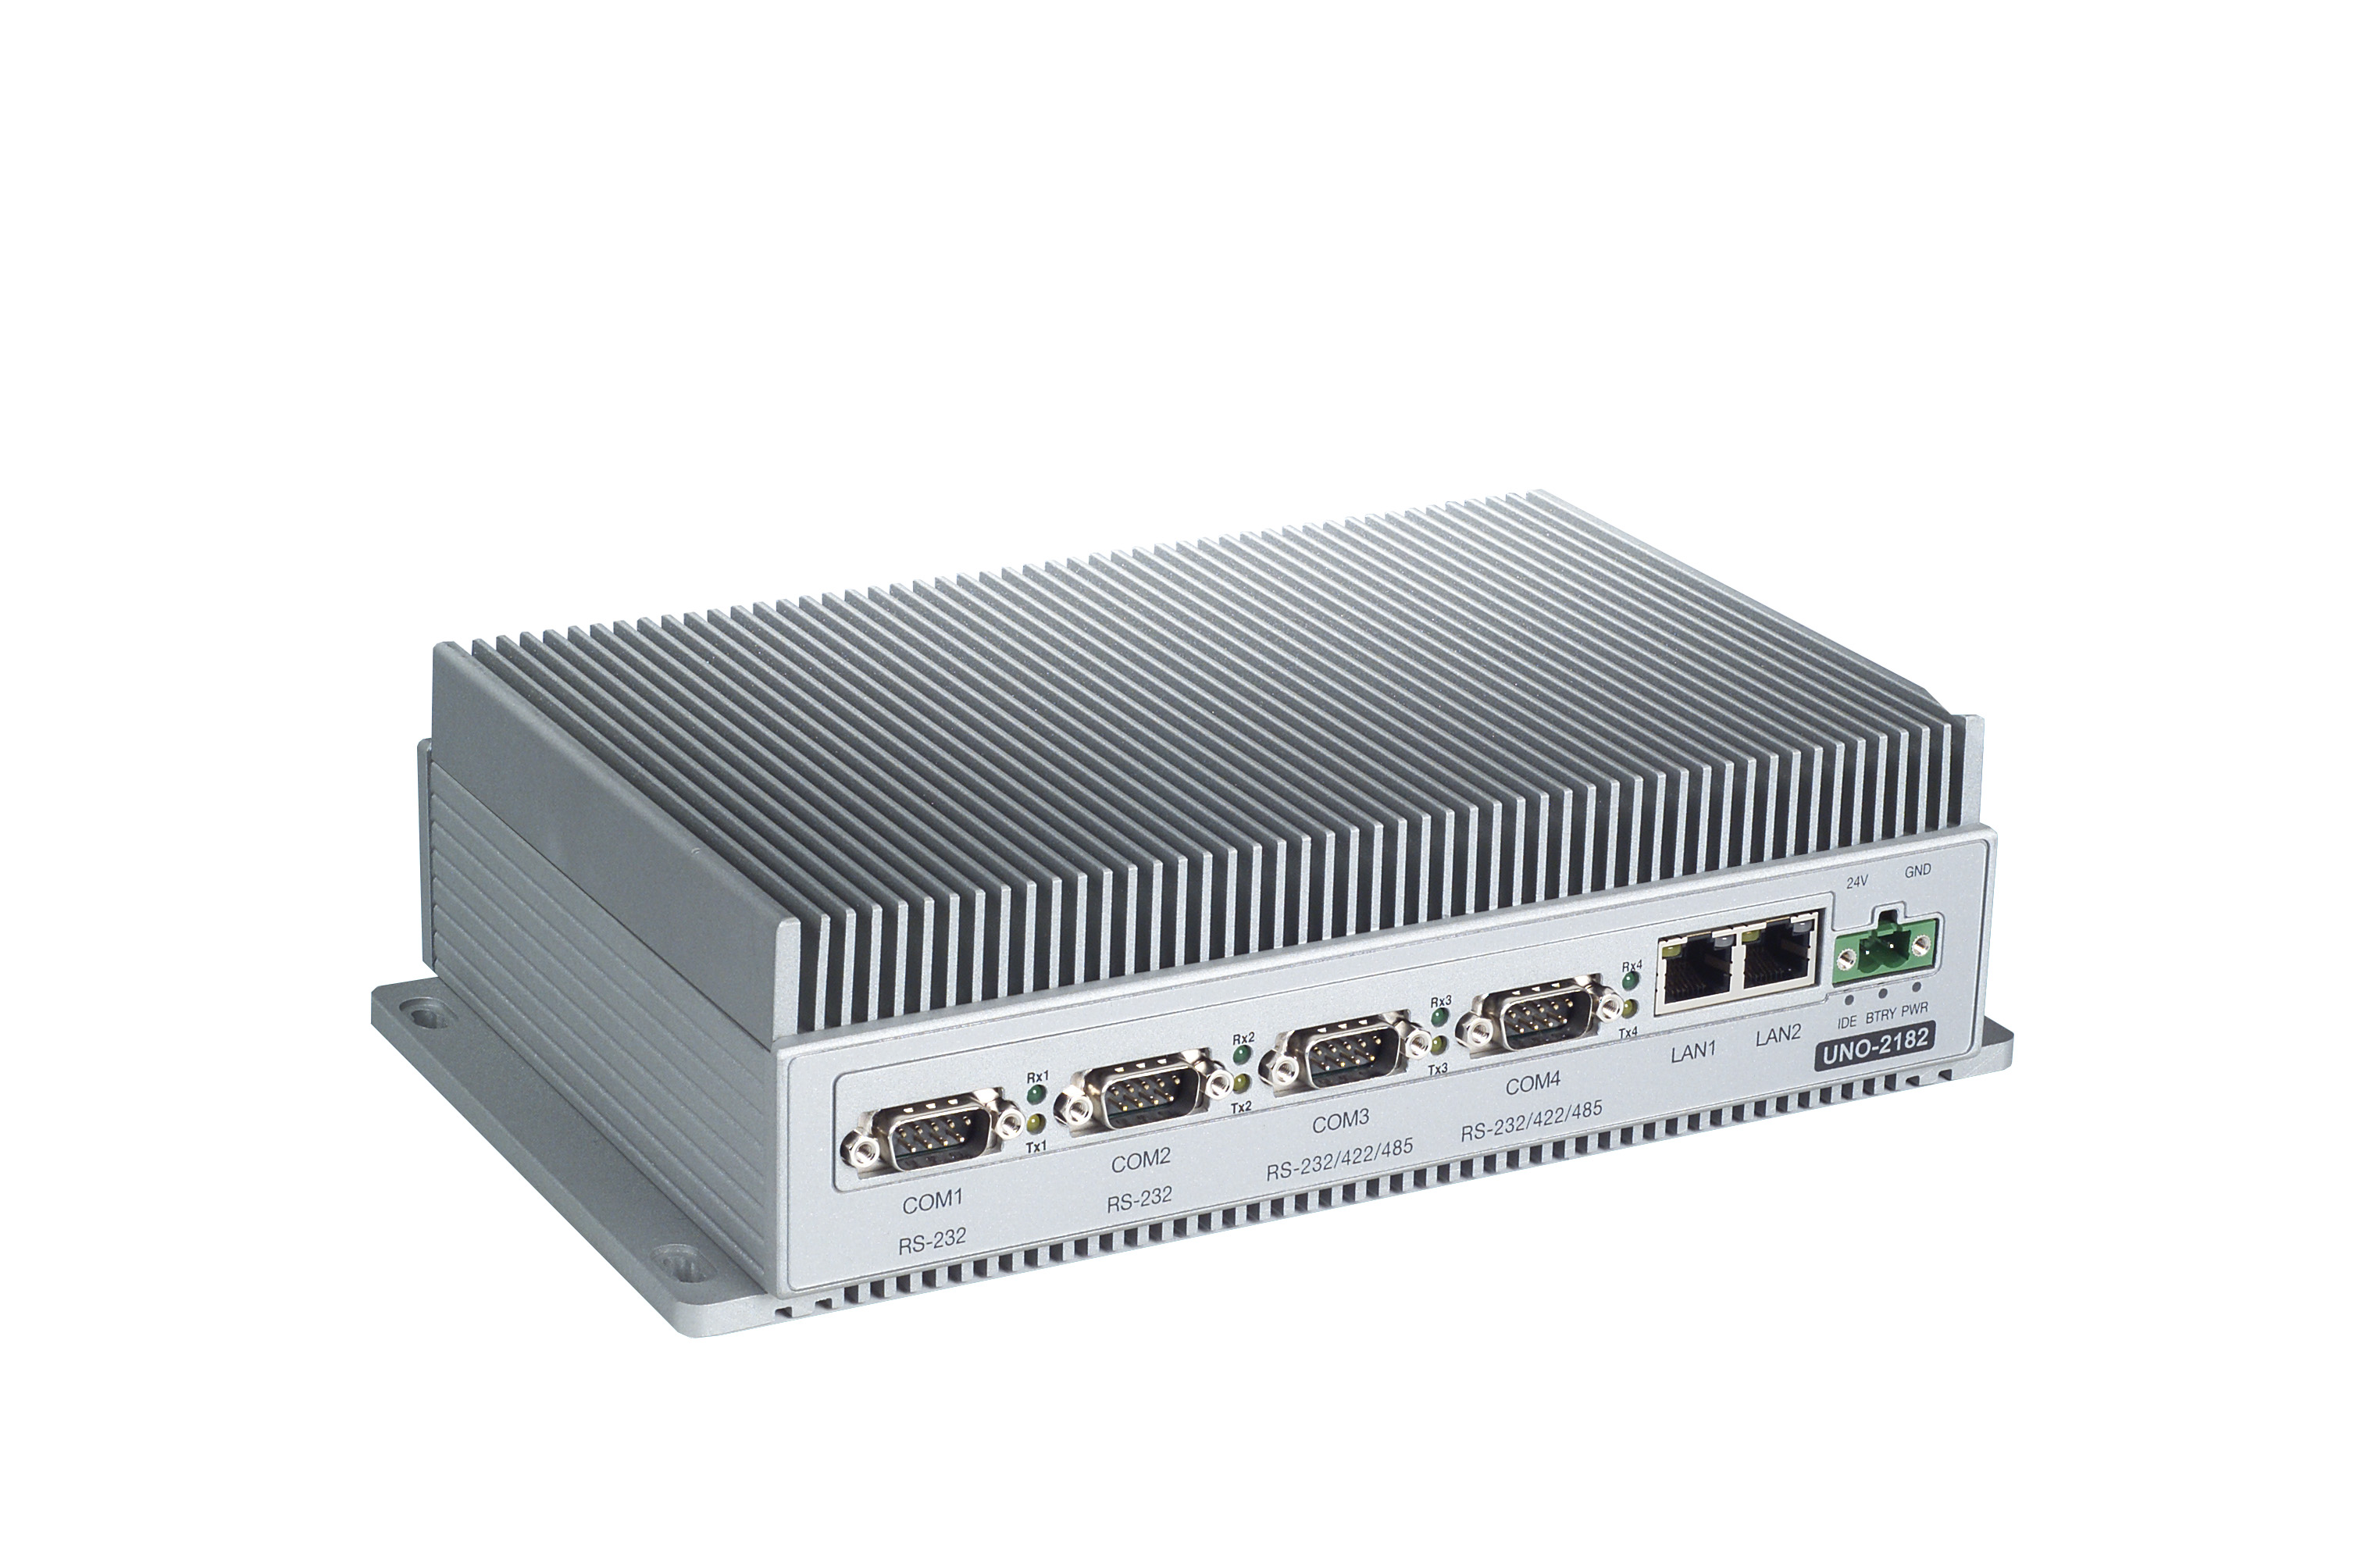 Core 2 Duo Fanless Embedded Automation Computer